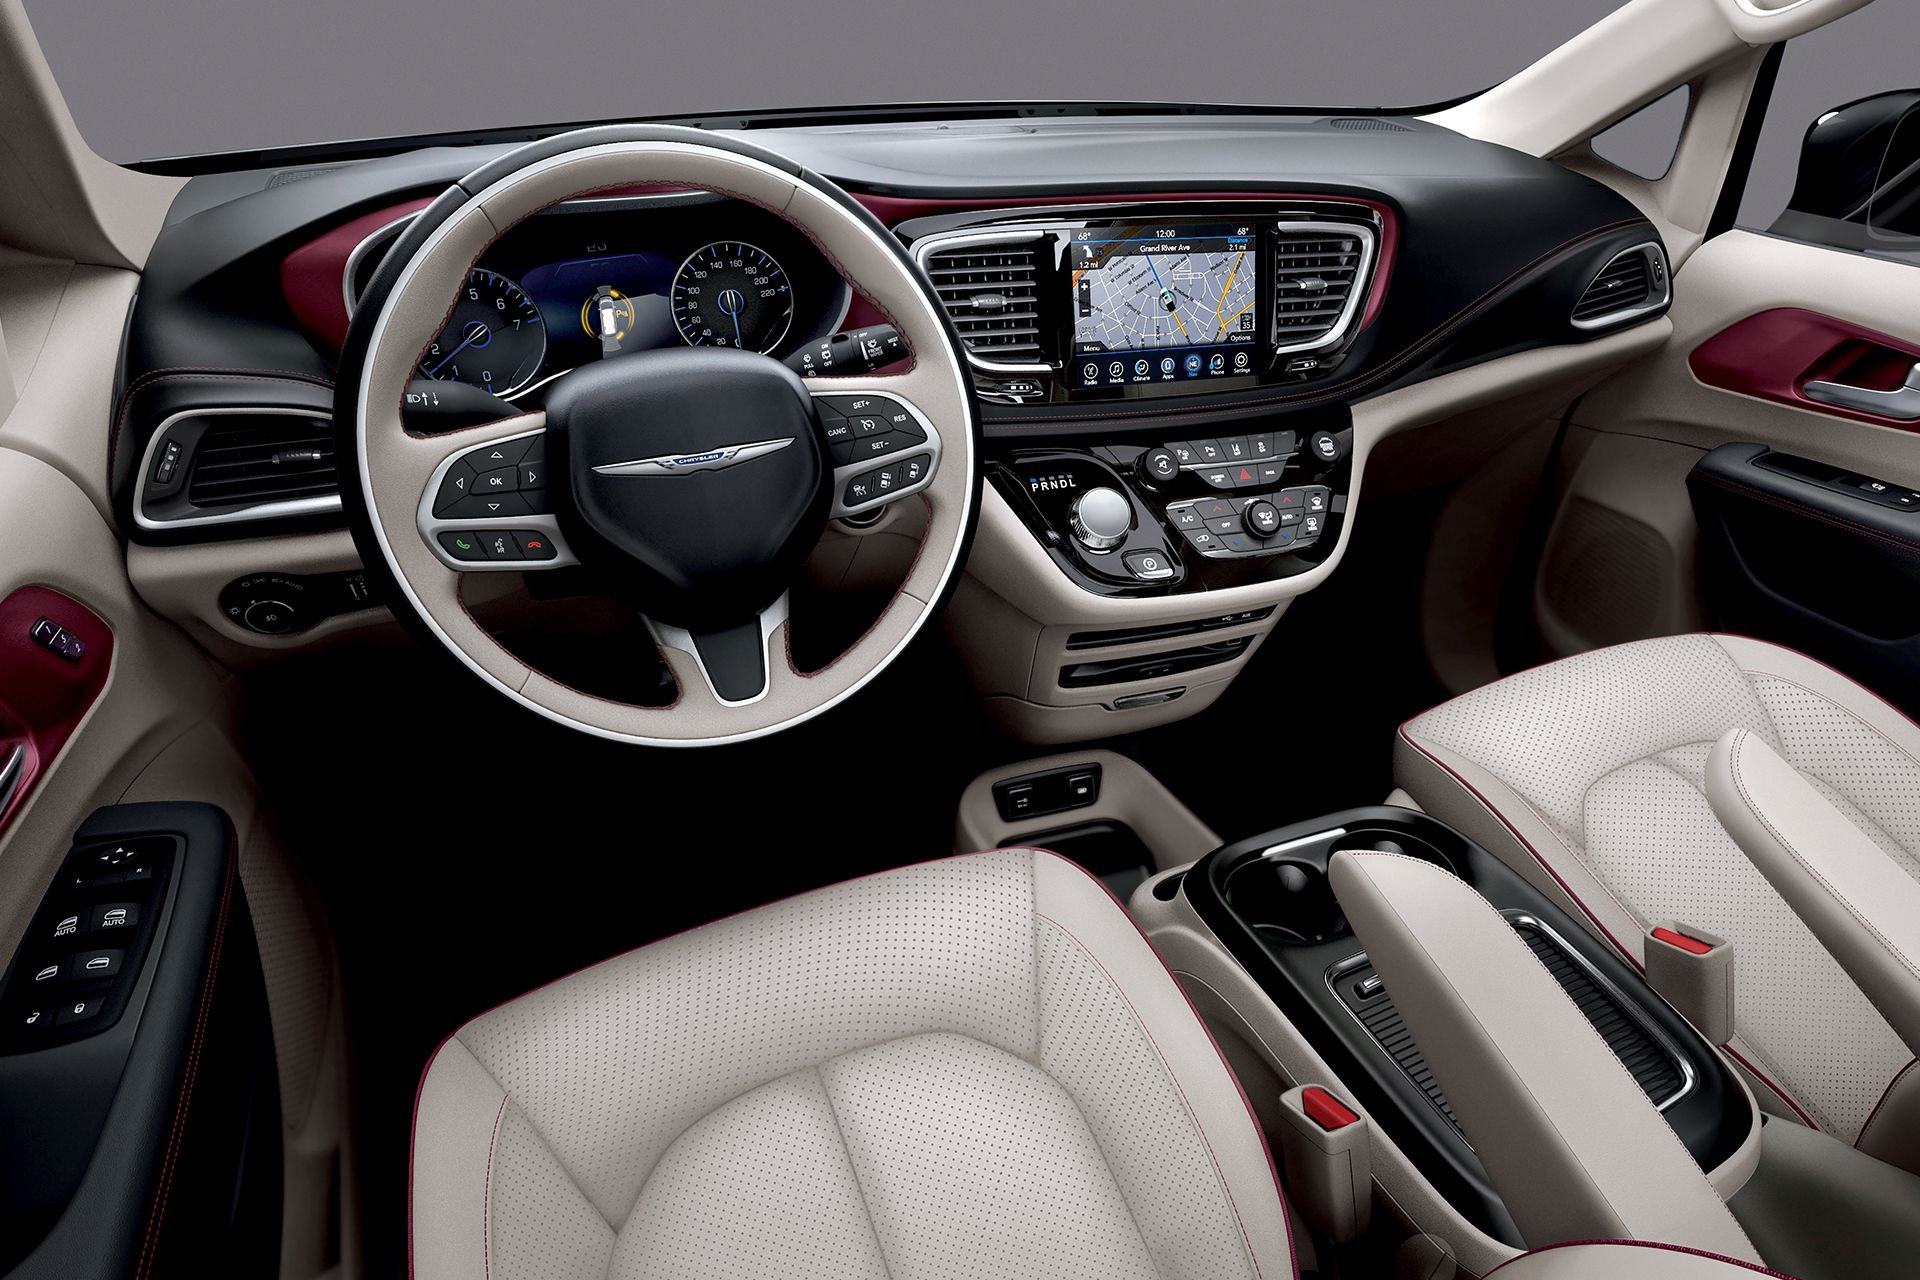 2018 Chrysler Pacifica Interior Front Dashboard